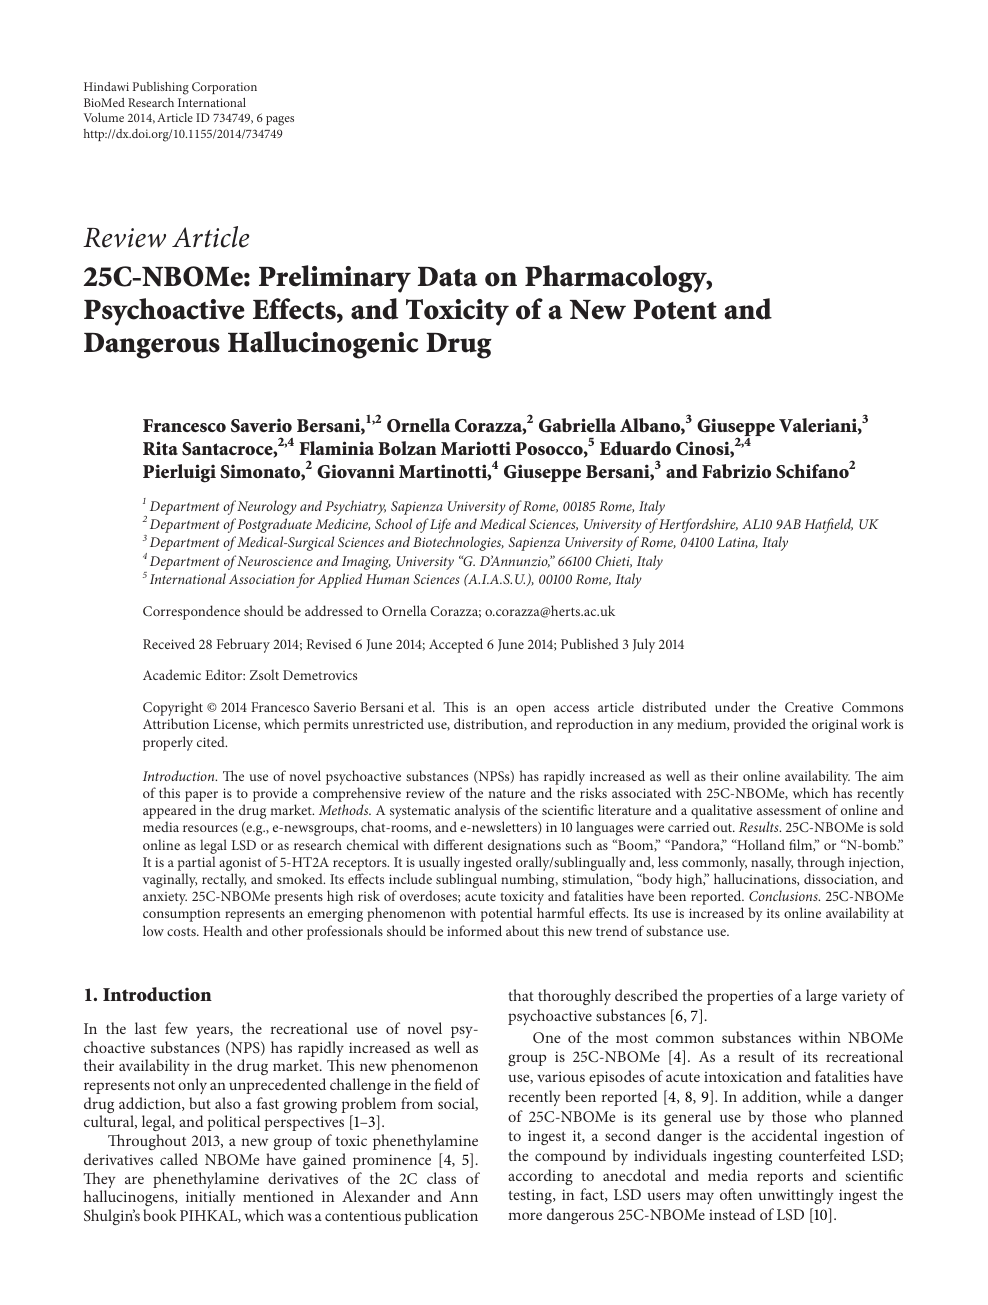 25C-NBOMe: Preliminary Data on Pharmacology, Psychoactive Effects